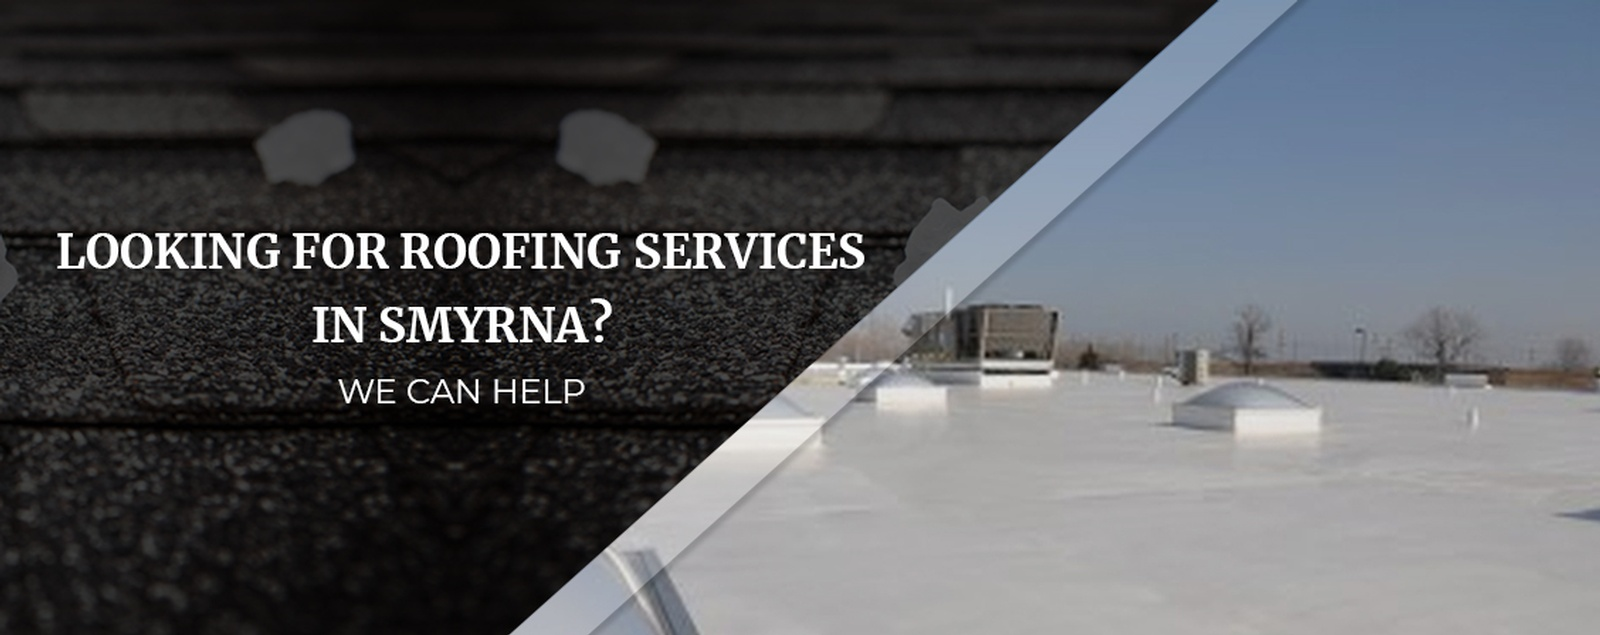 Looking For Roofing Services In Smyrna We Can Help